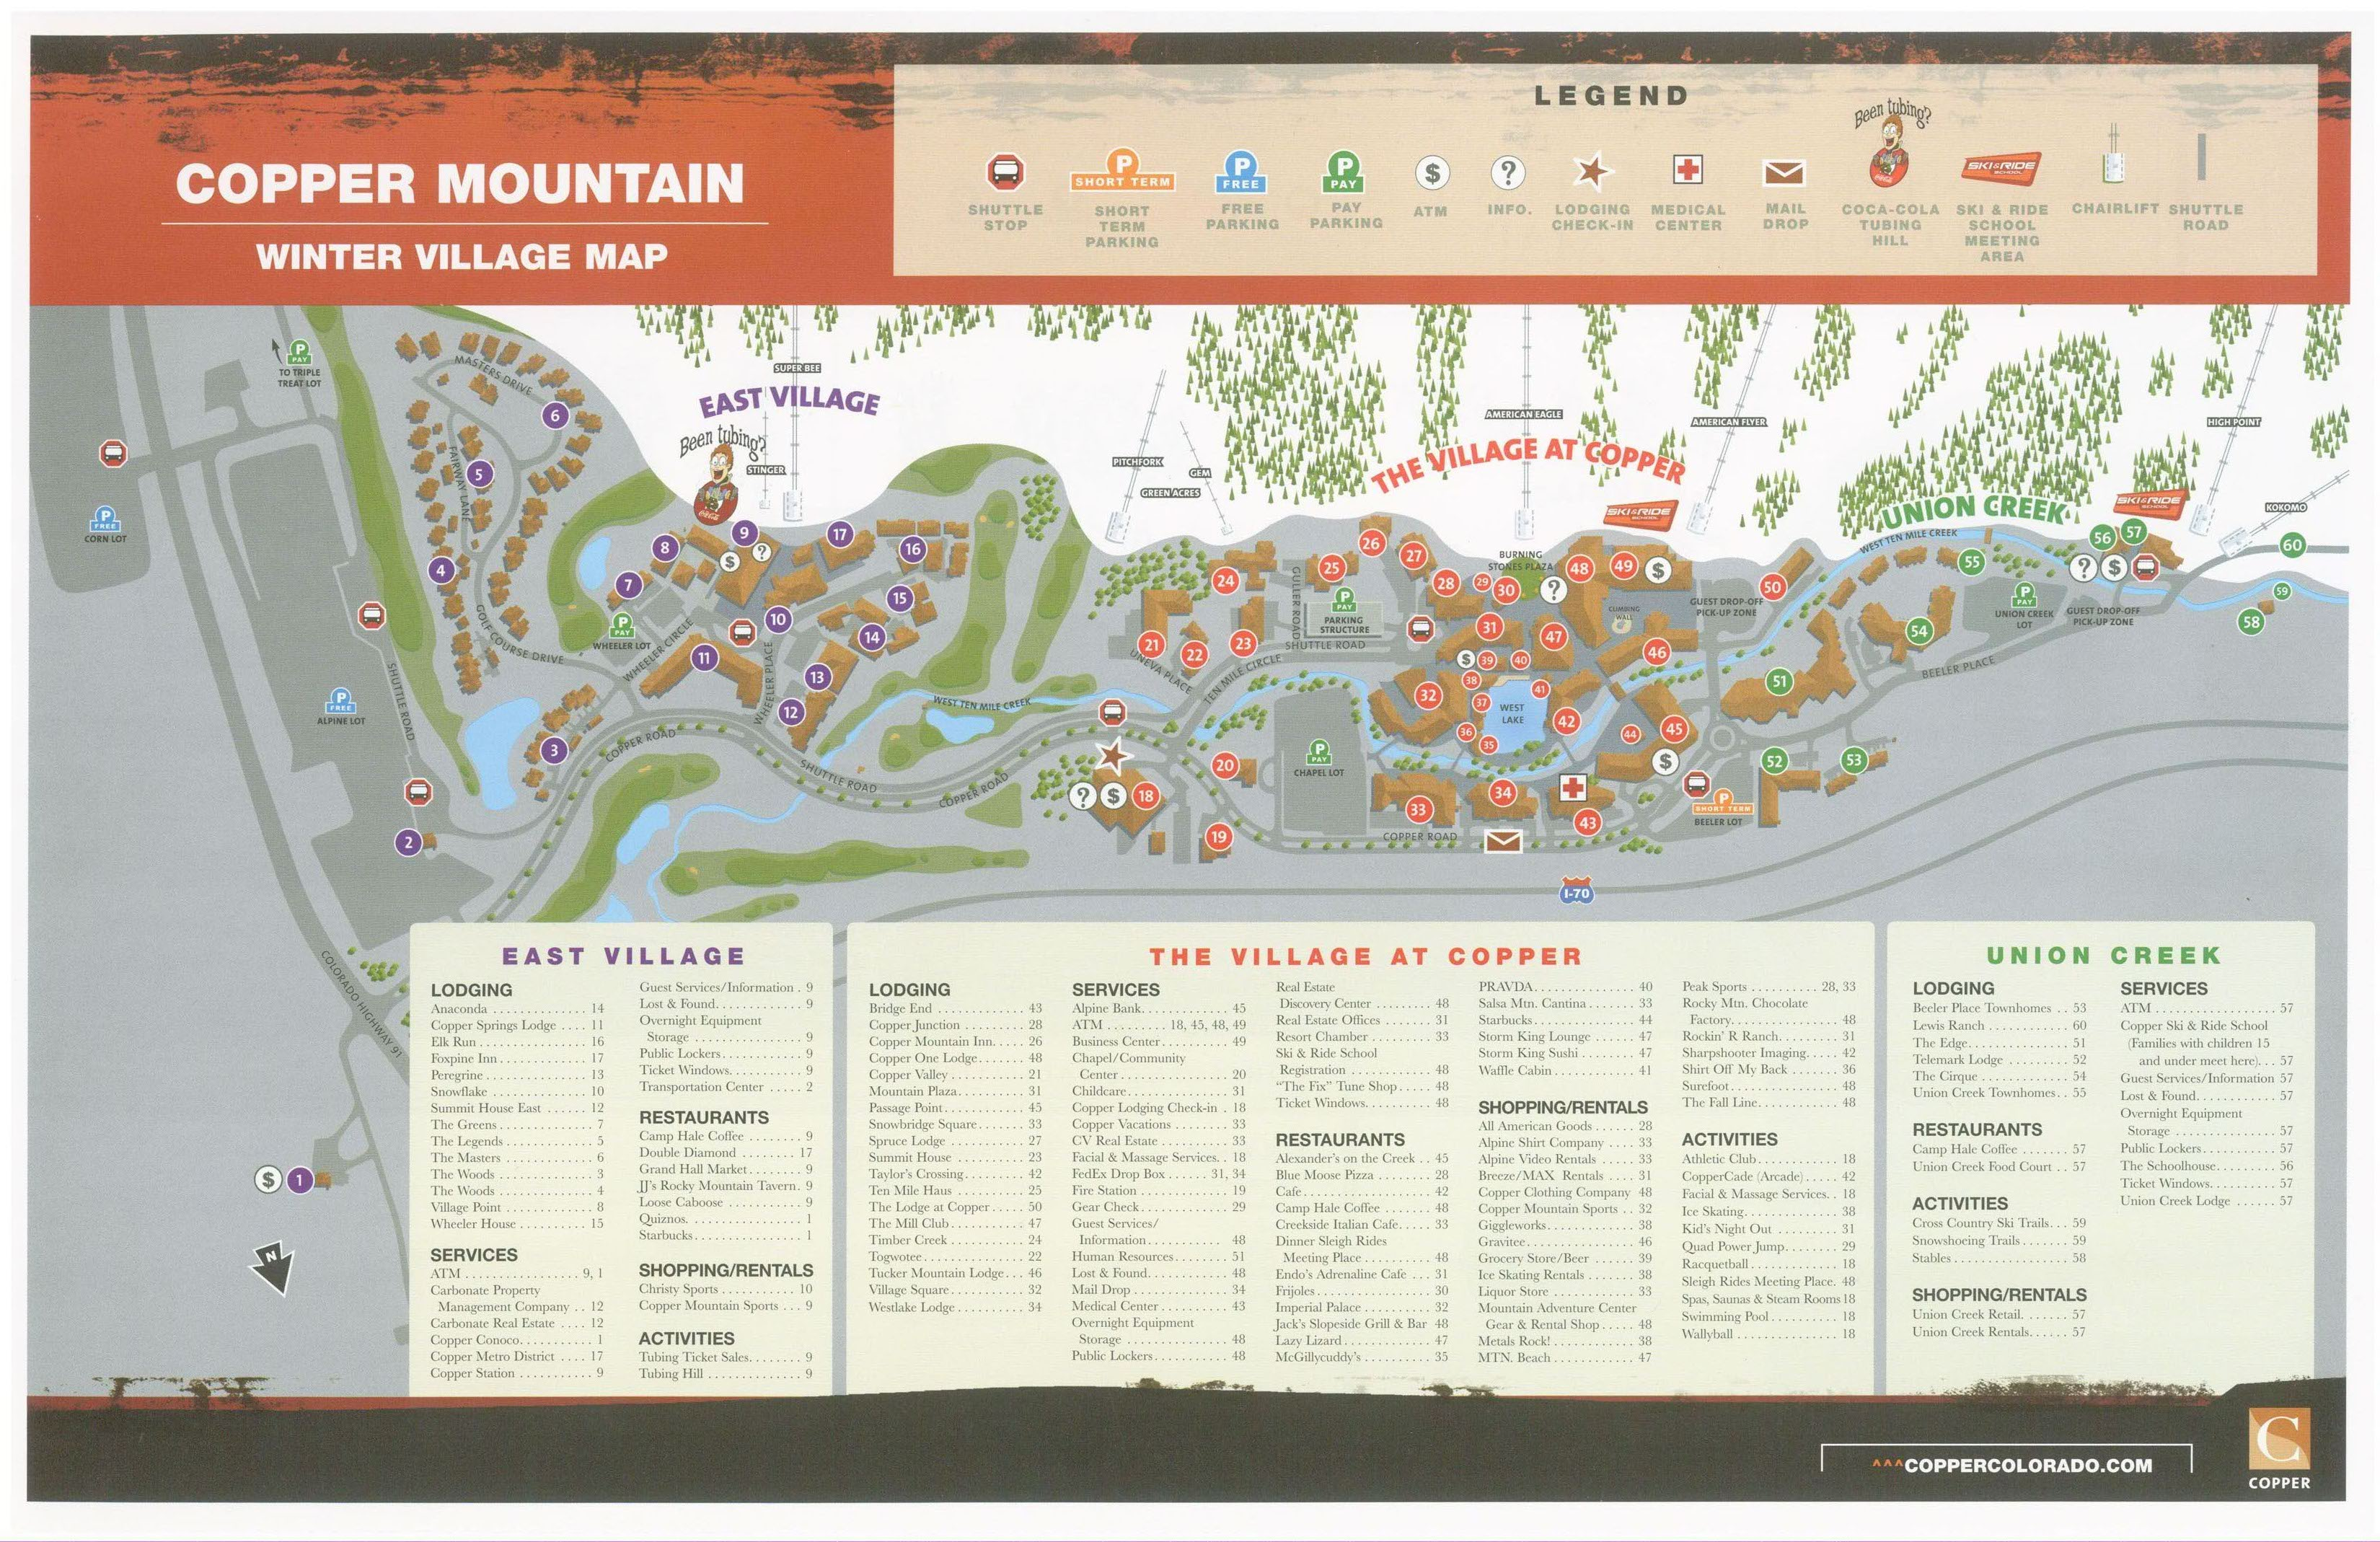 Ski Copper Mountain U2013 Customize Your Copper Mountain Ski Vacations With Rocky  Mountain Resort Management. Copper Mountainu0027s Award Winning Trail Layout ...